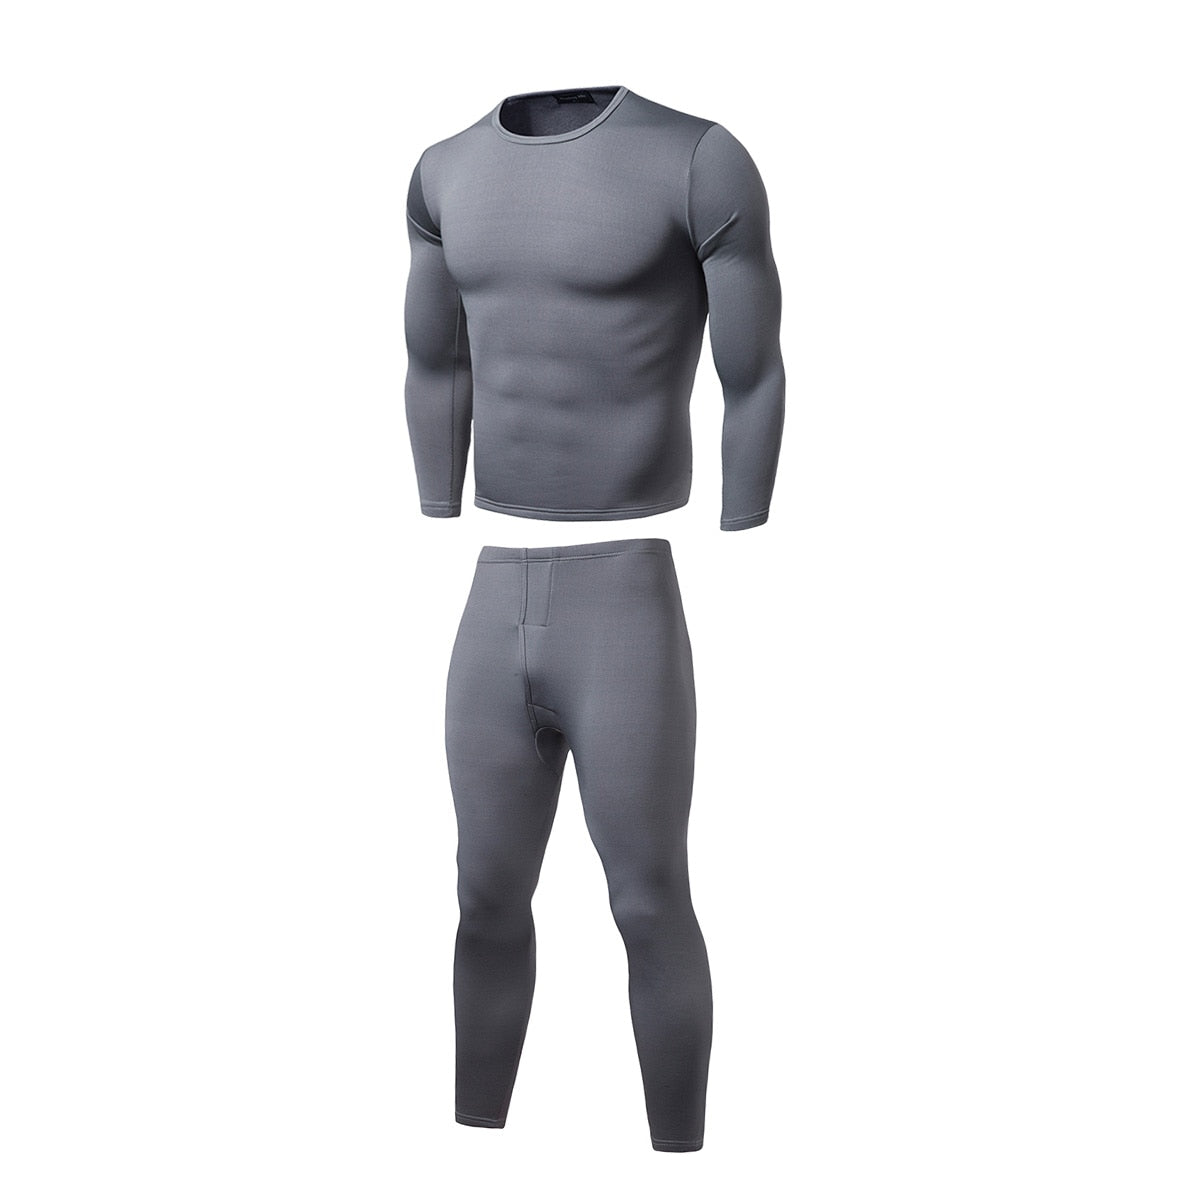 Men's Thermal Pajama Sets